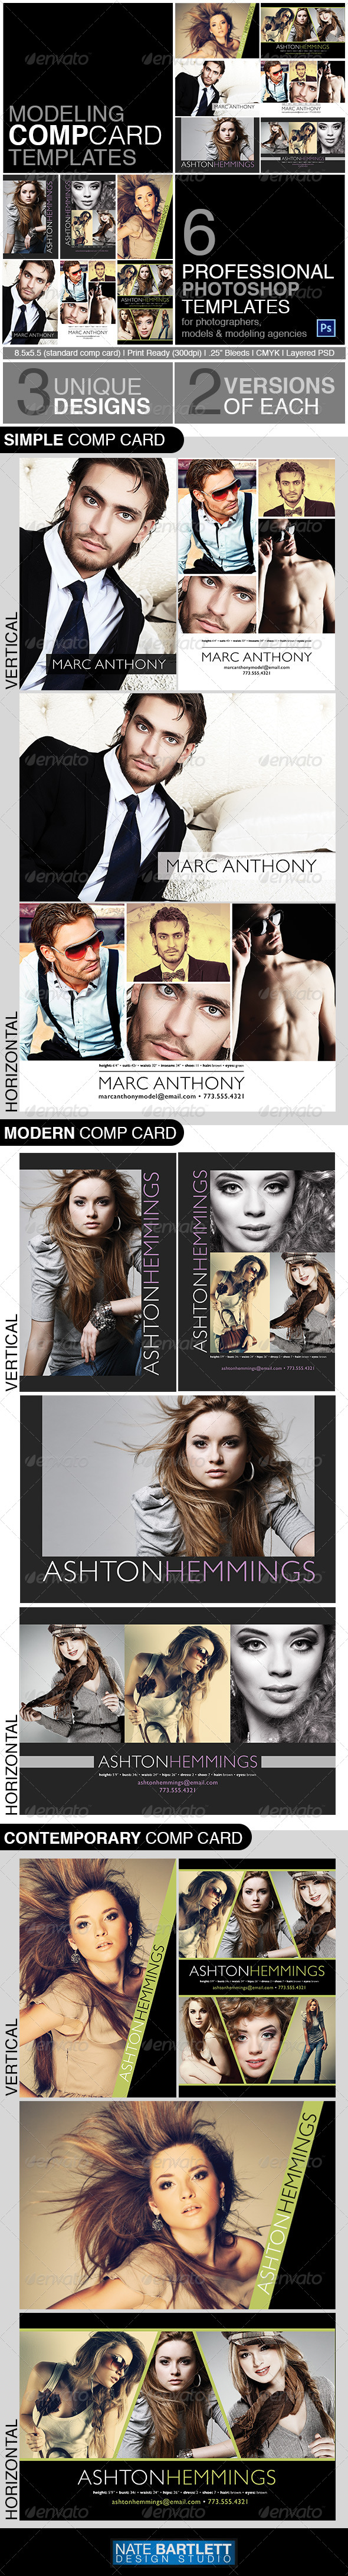 Model Comp Card Template Kit By Natedilli GraphicRiver - Model comp card template